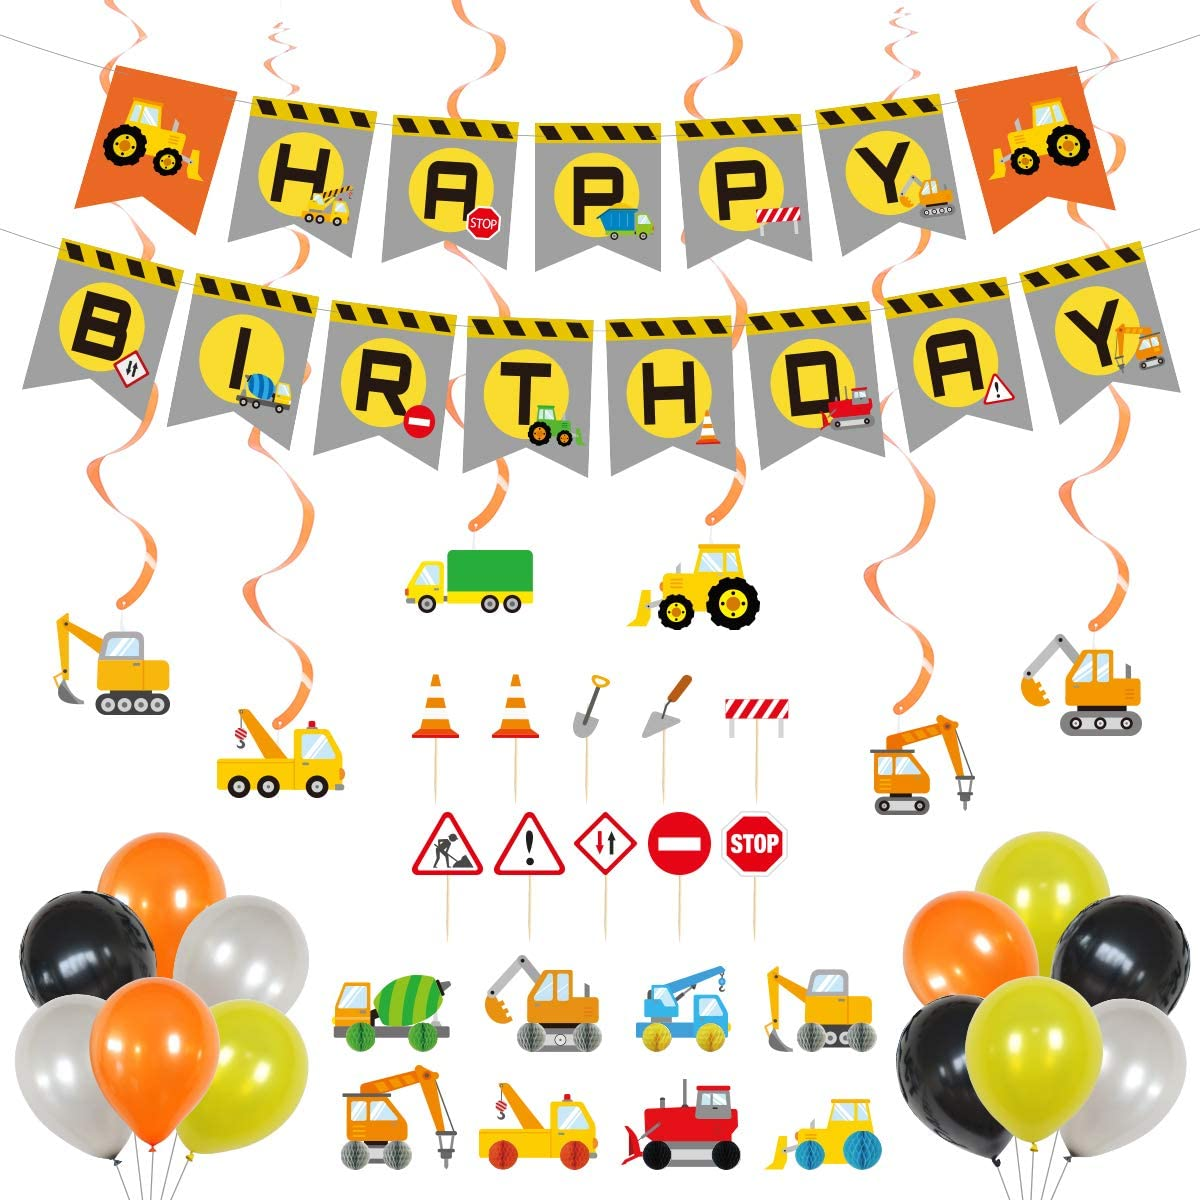 Construction Birthday Party Supplies | Dump Truck Party Decorations Kits Set| Include Happy Birthday Banner |Hanging Swirl |Orange Foil Balloons |Truck Cupcake Toppers |Truck Honeycomb